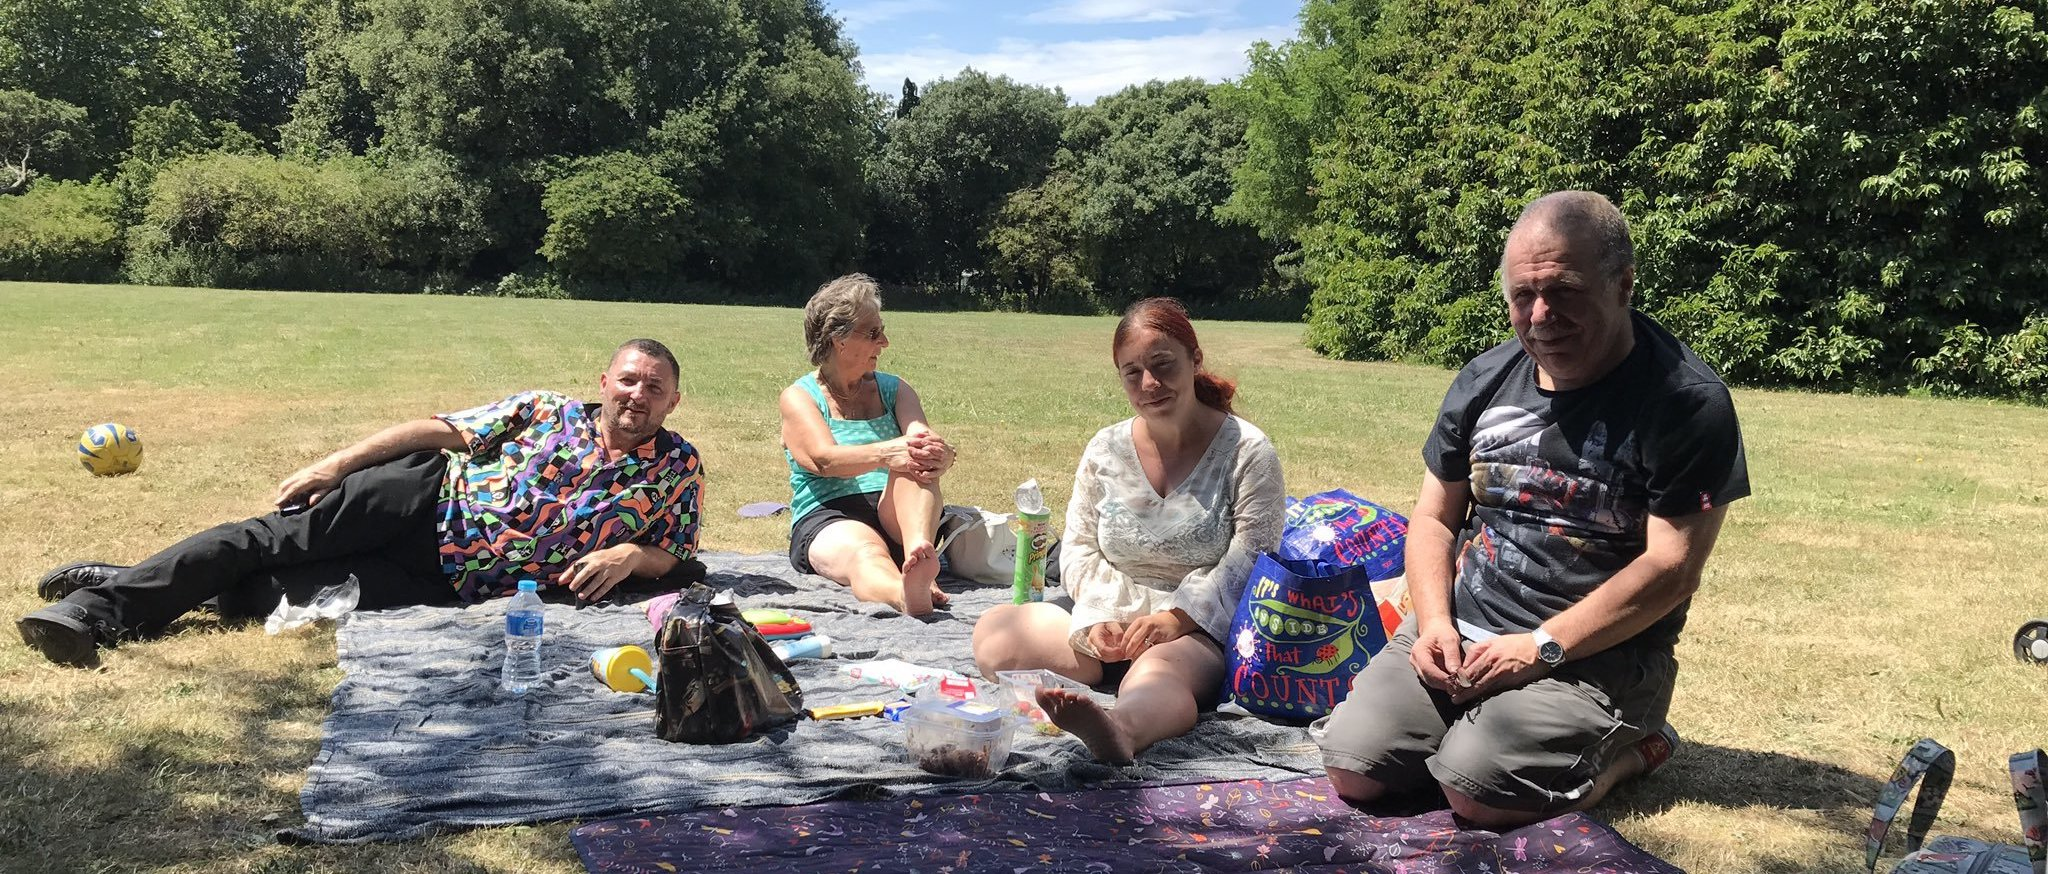 Local People Enjoy St James' For Summer Picnic